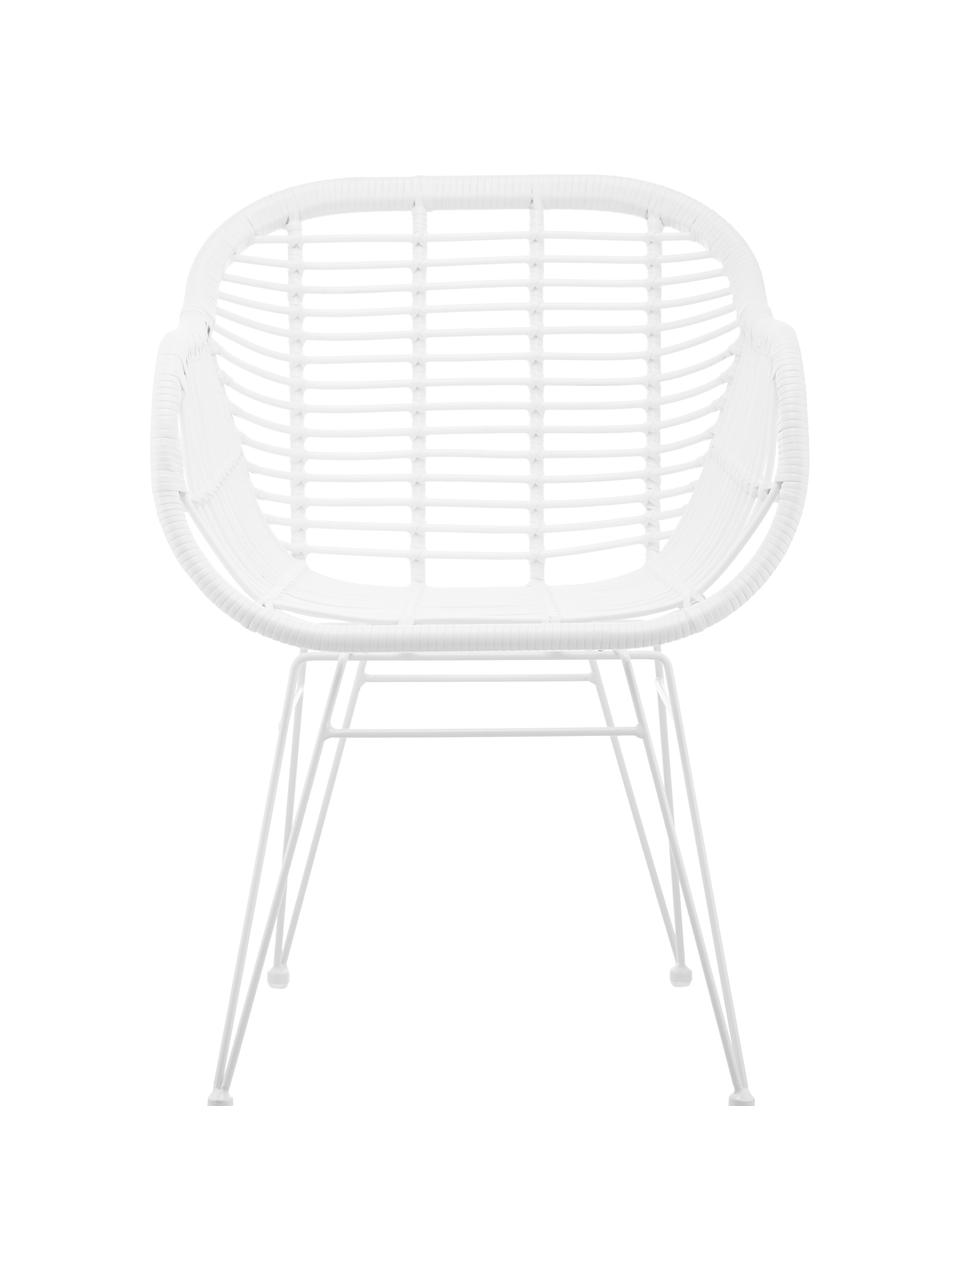 Chaise polyrotin Costa, 2pièces, Assise: blanc Structure: blanc, mat